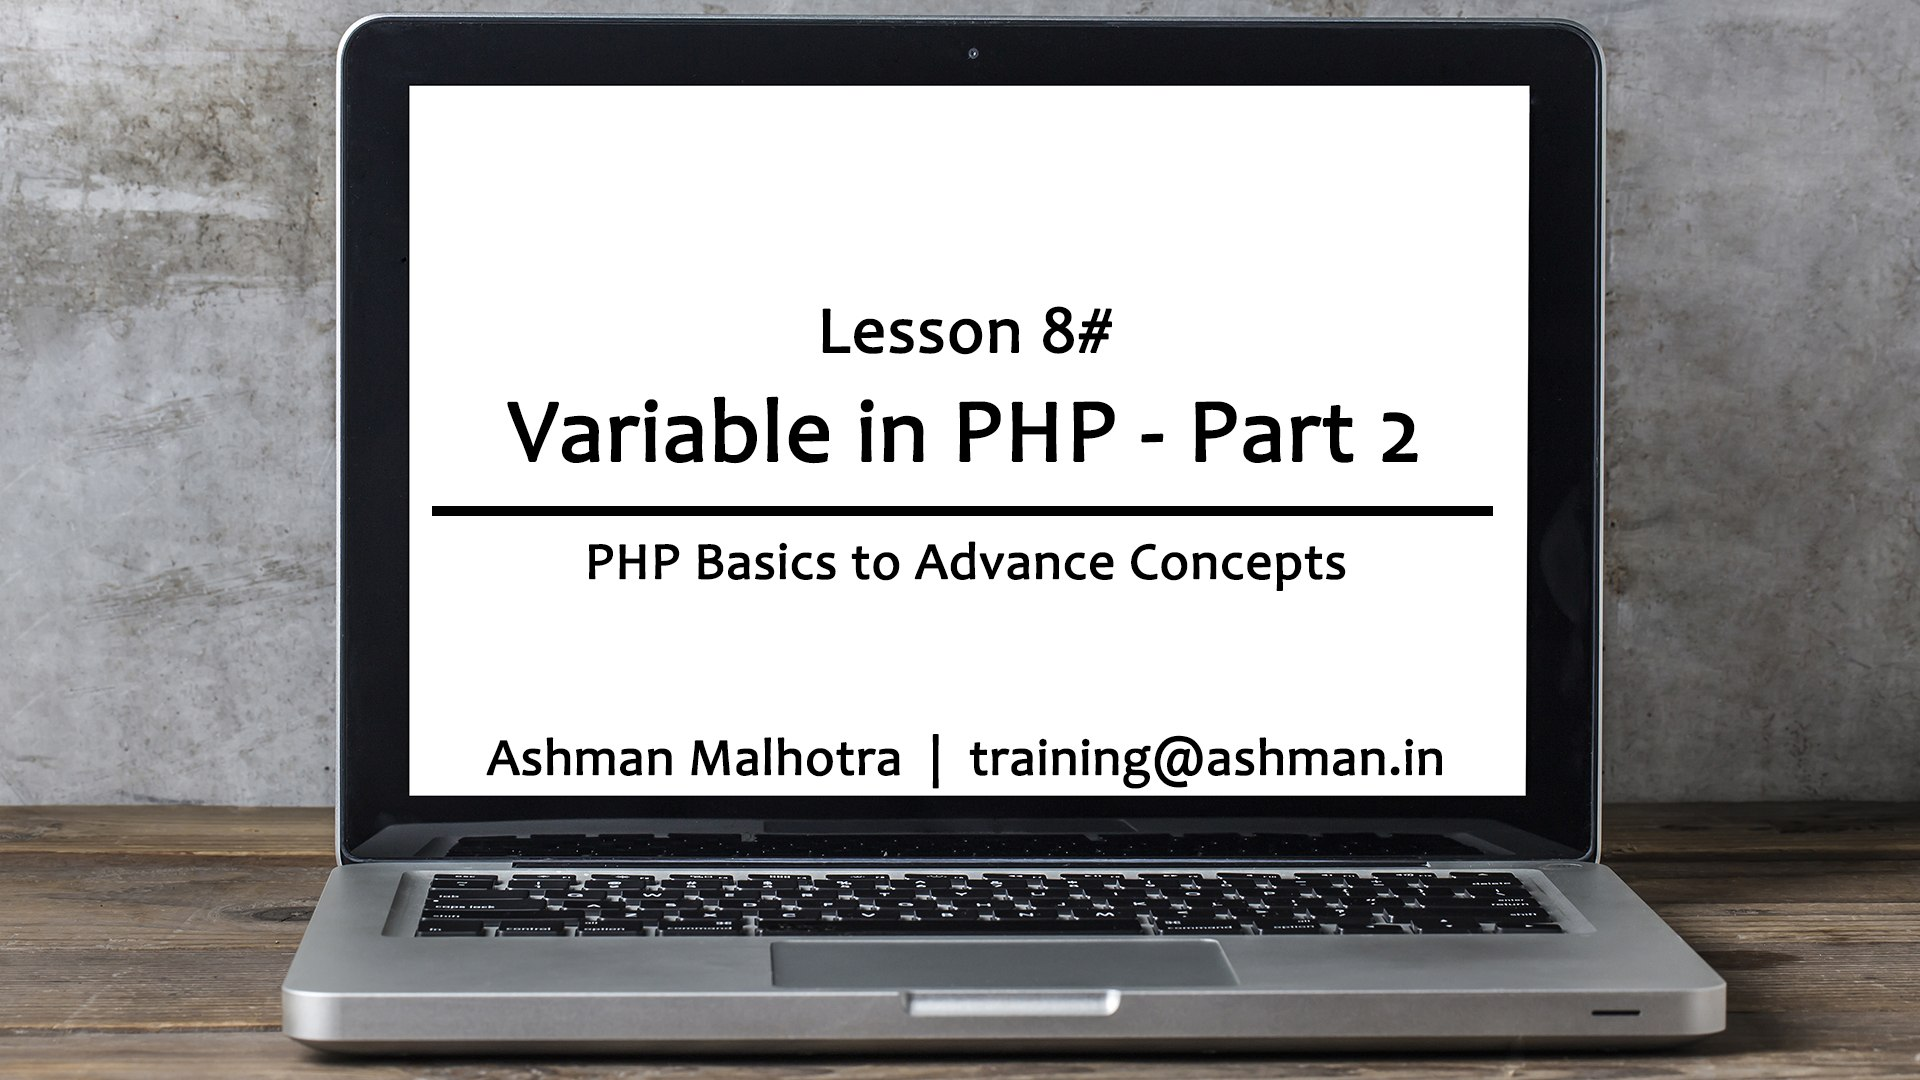 008 Variable in PHP - Part 2